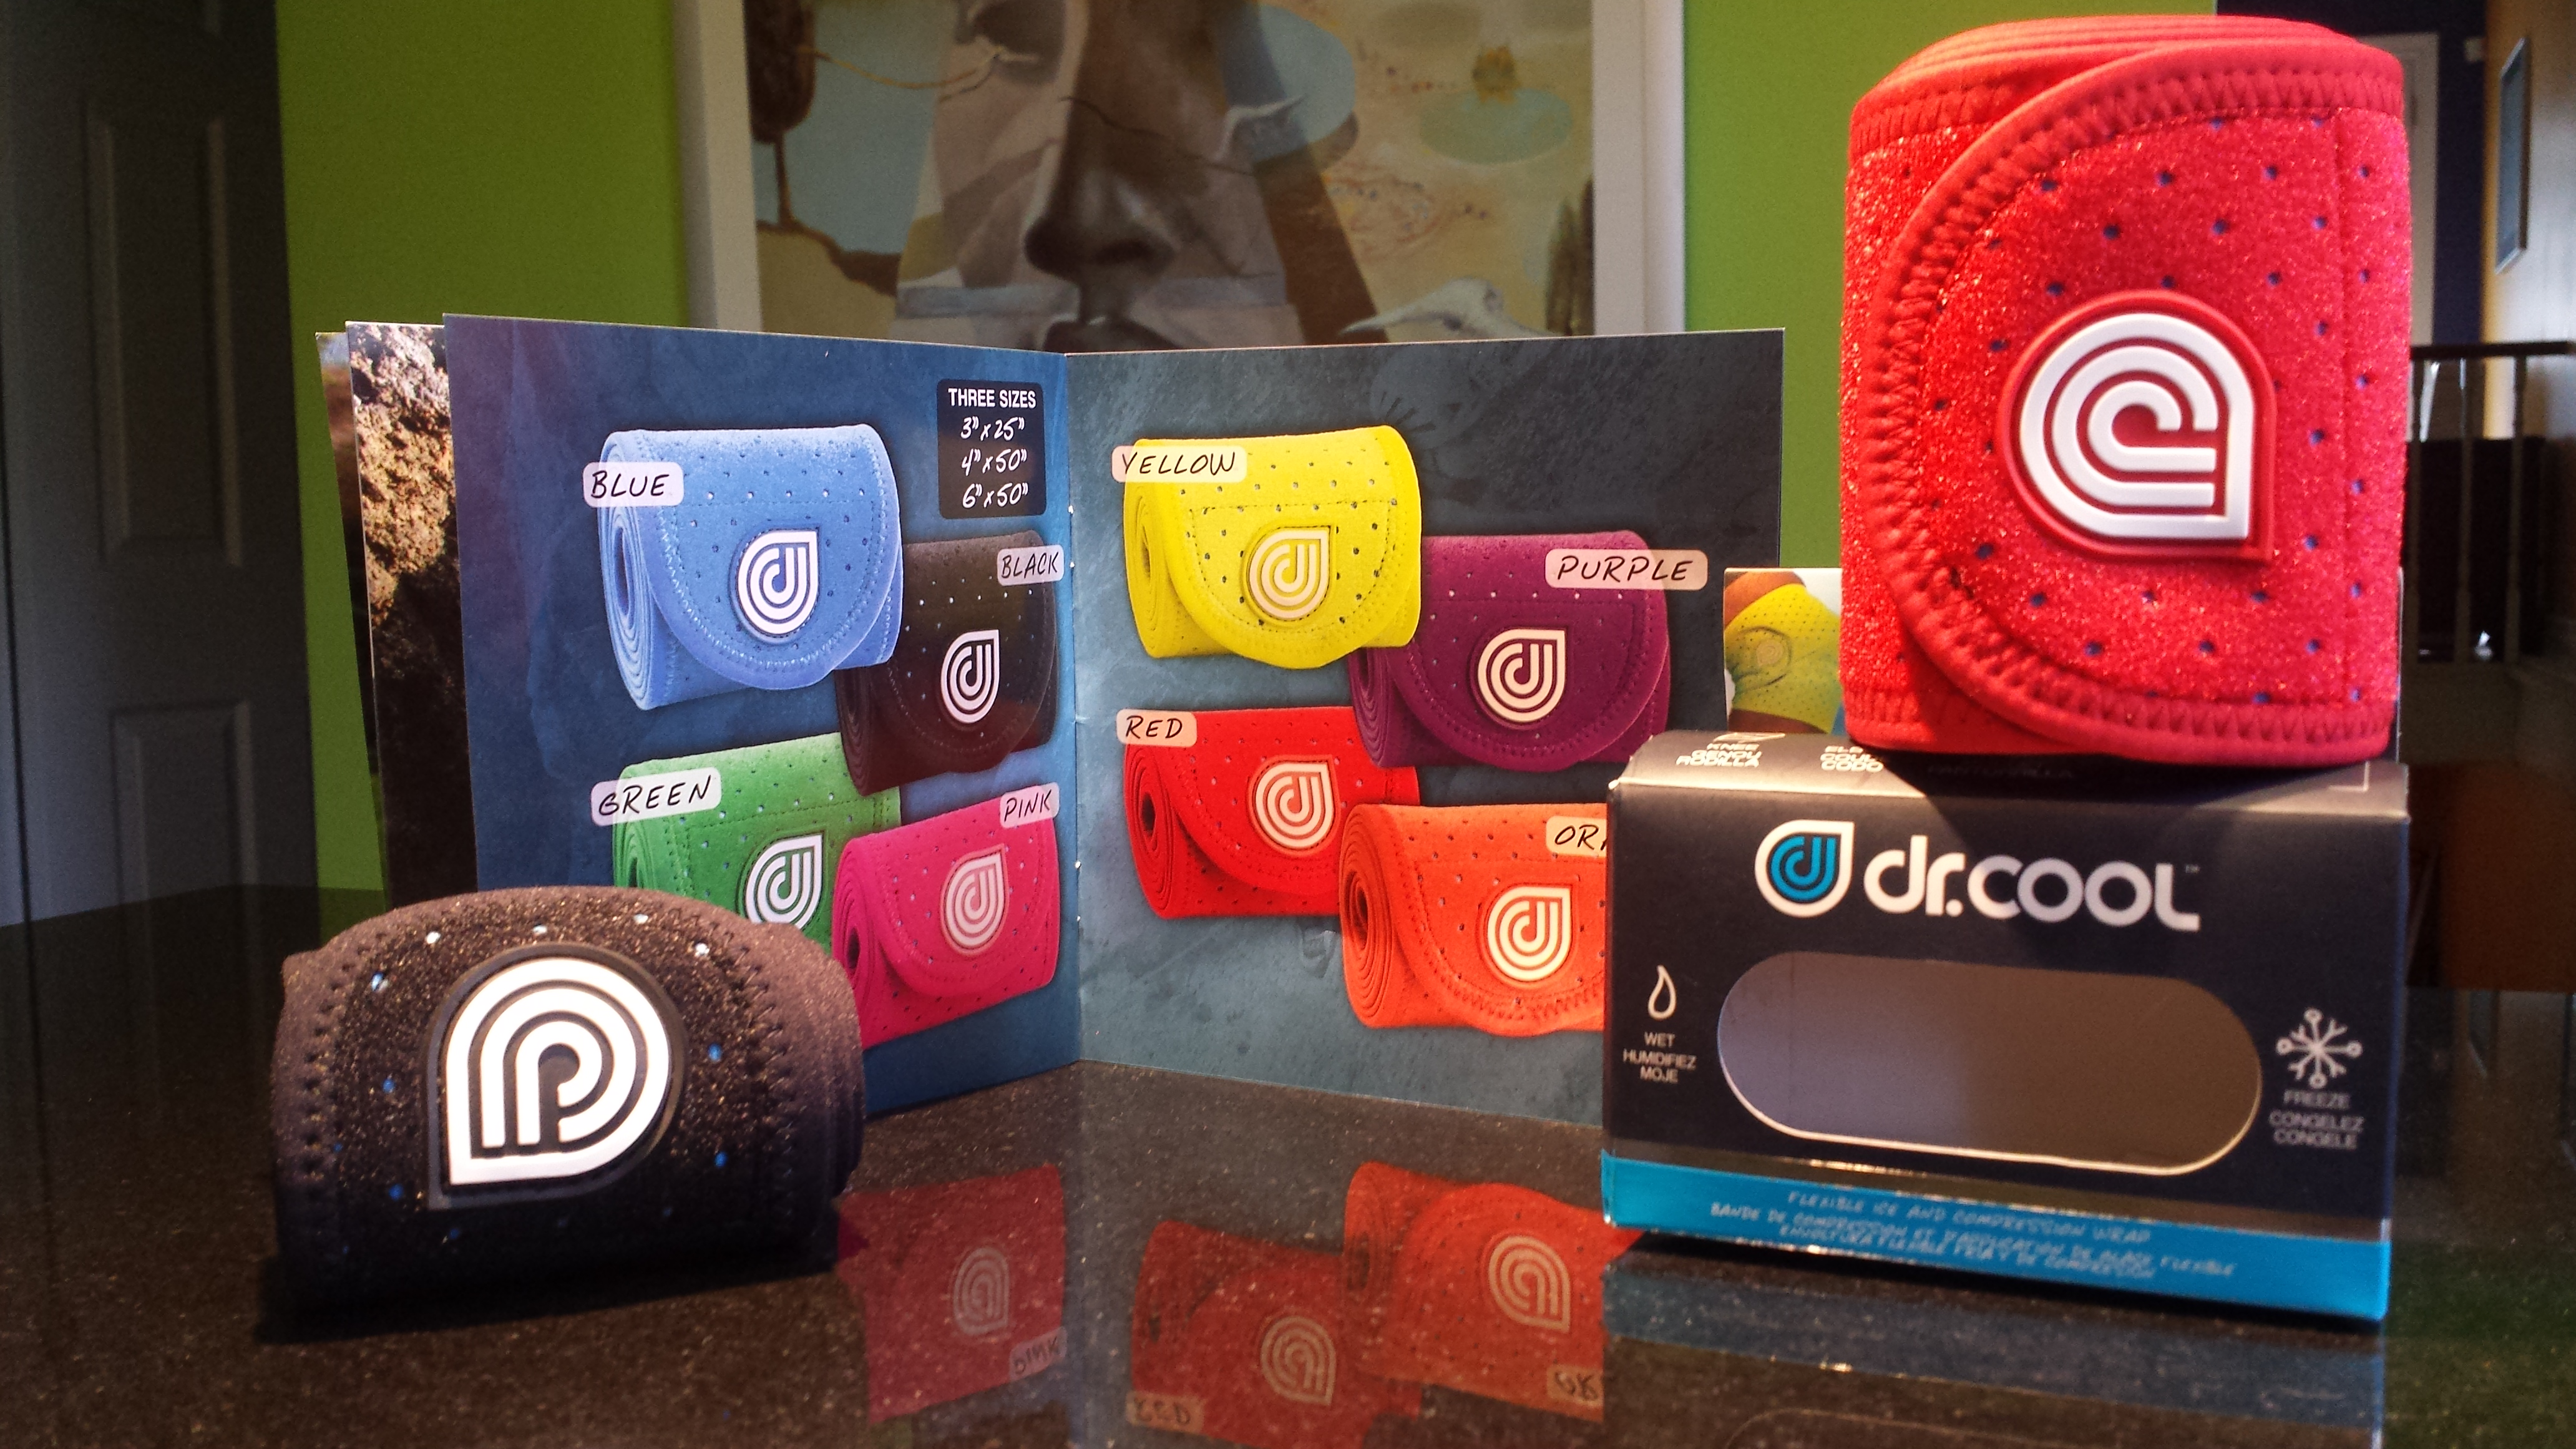 dr cool wraps not just for athletes drcoolwraps arthritis ice